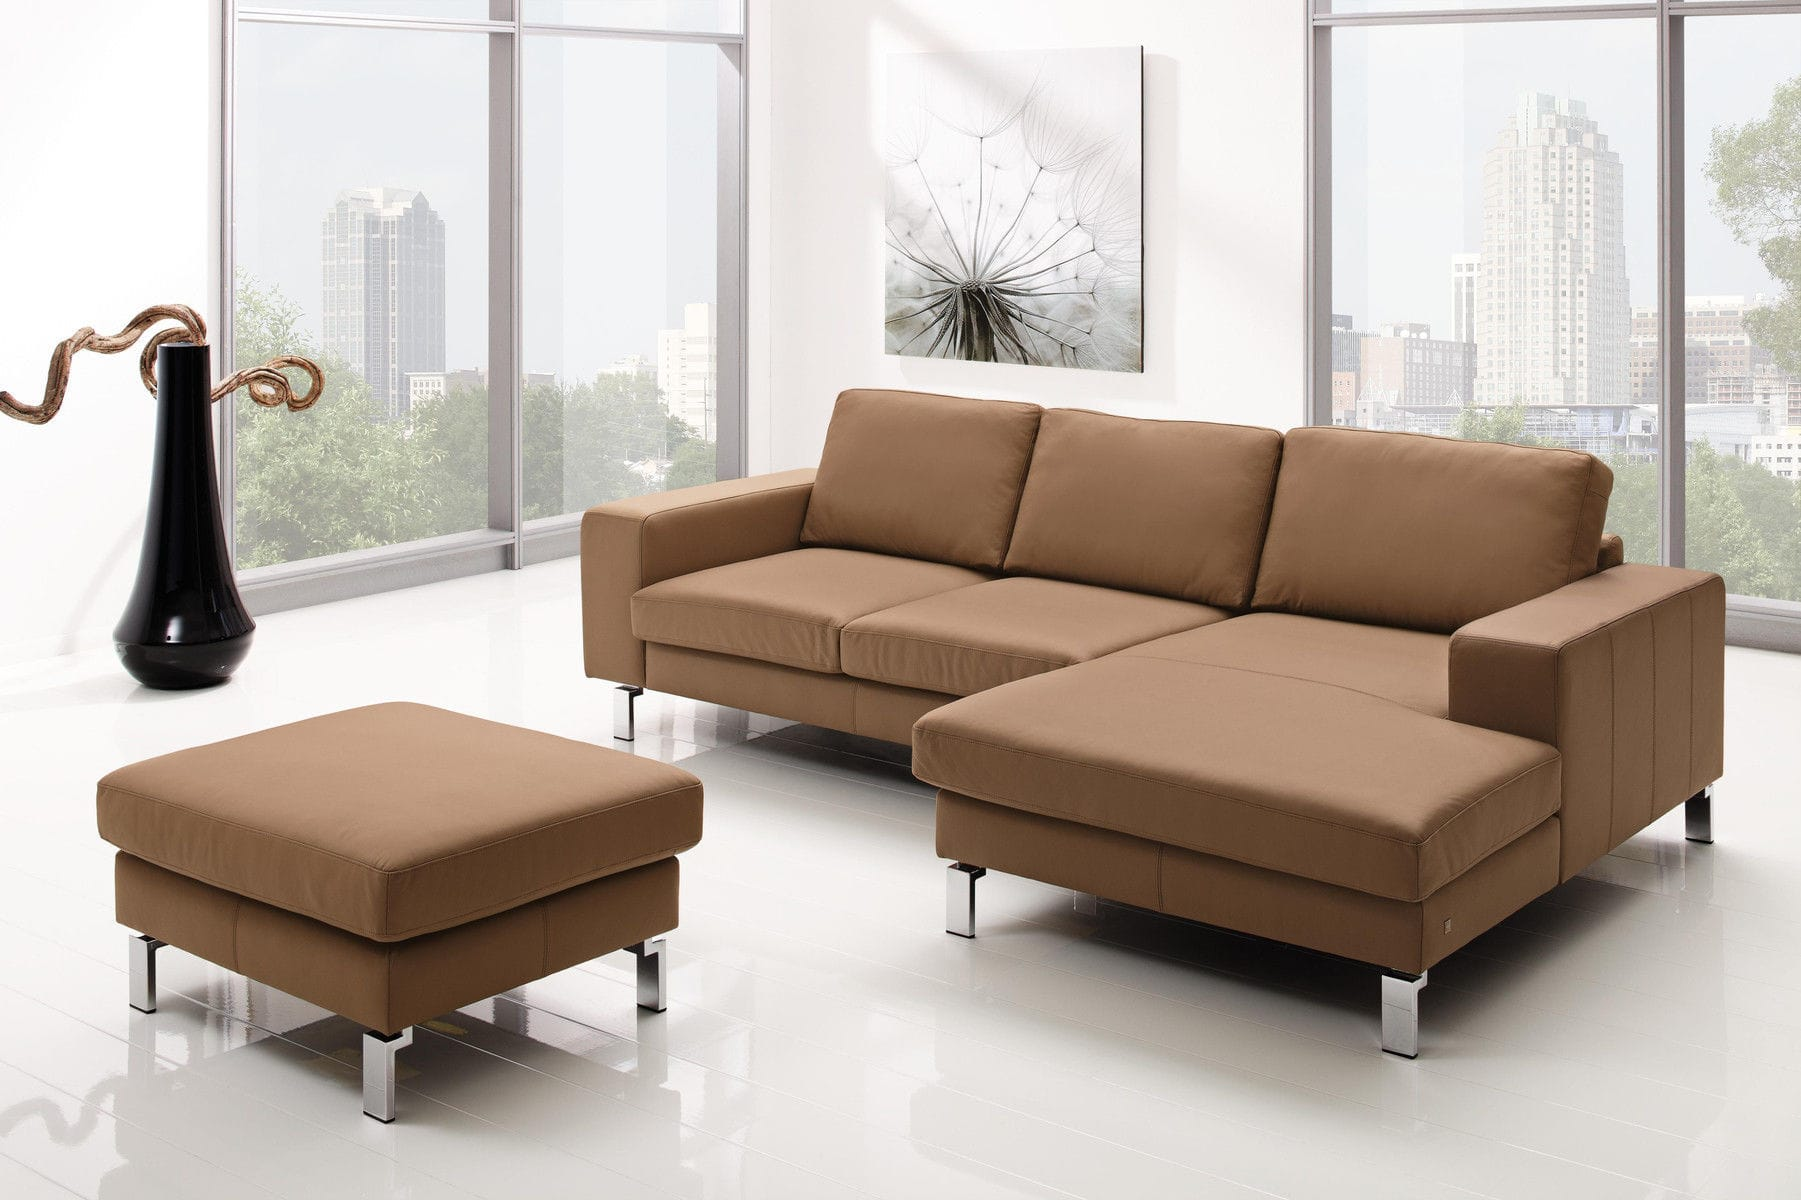 Modular Sofa Contemporary Fabric Leather Mr 4500 Musterring